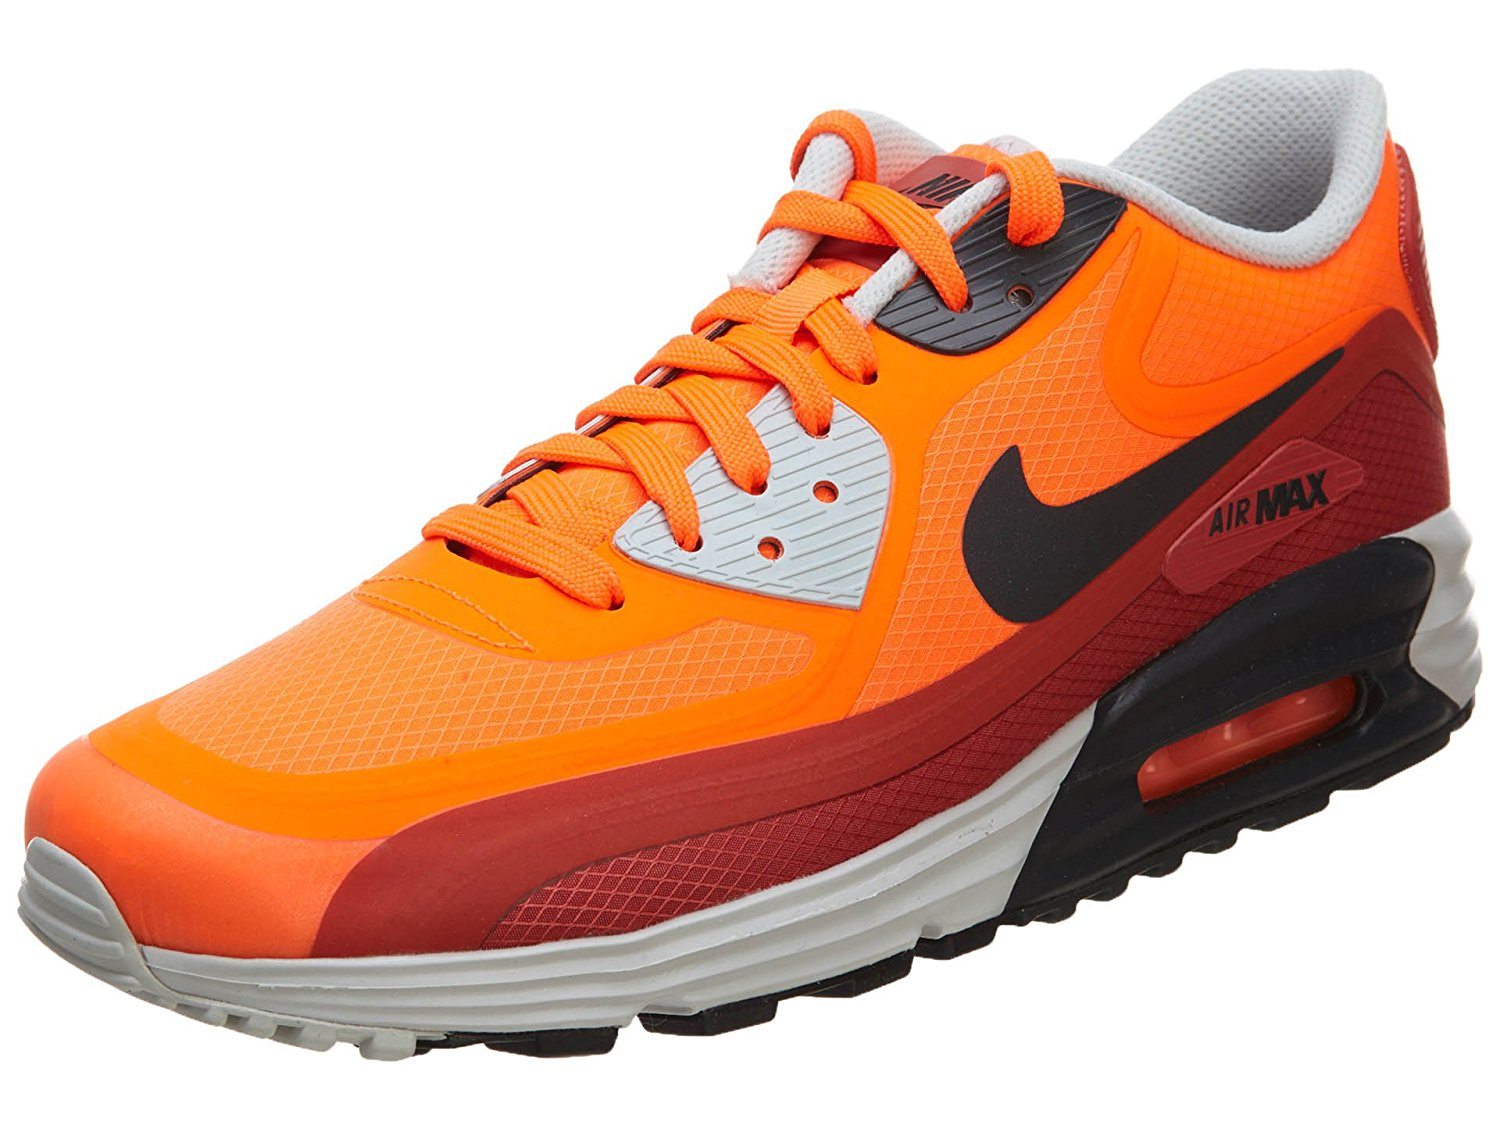 Cheap Air Lunar, find Air Lunar deals on line at